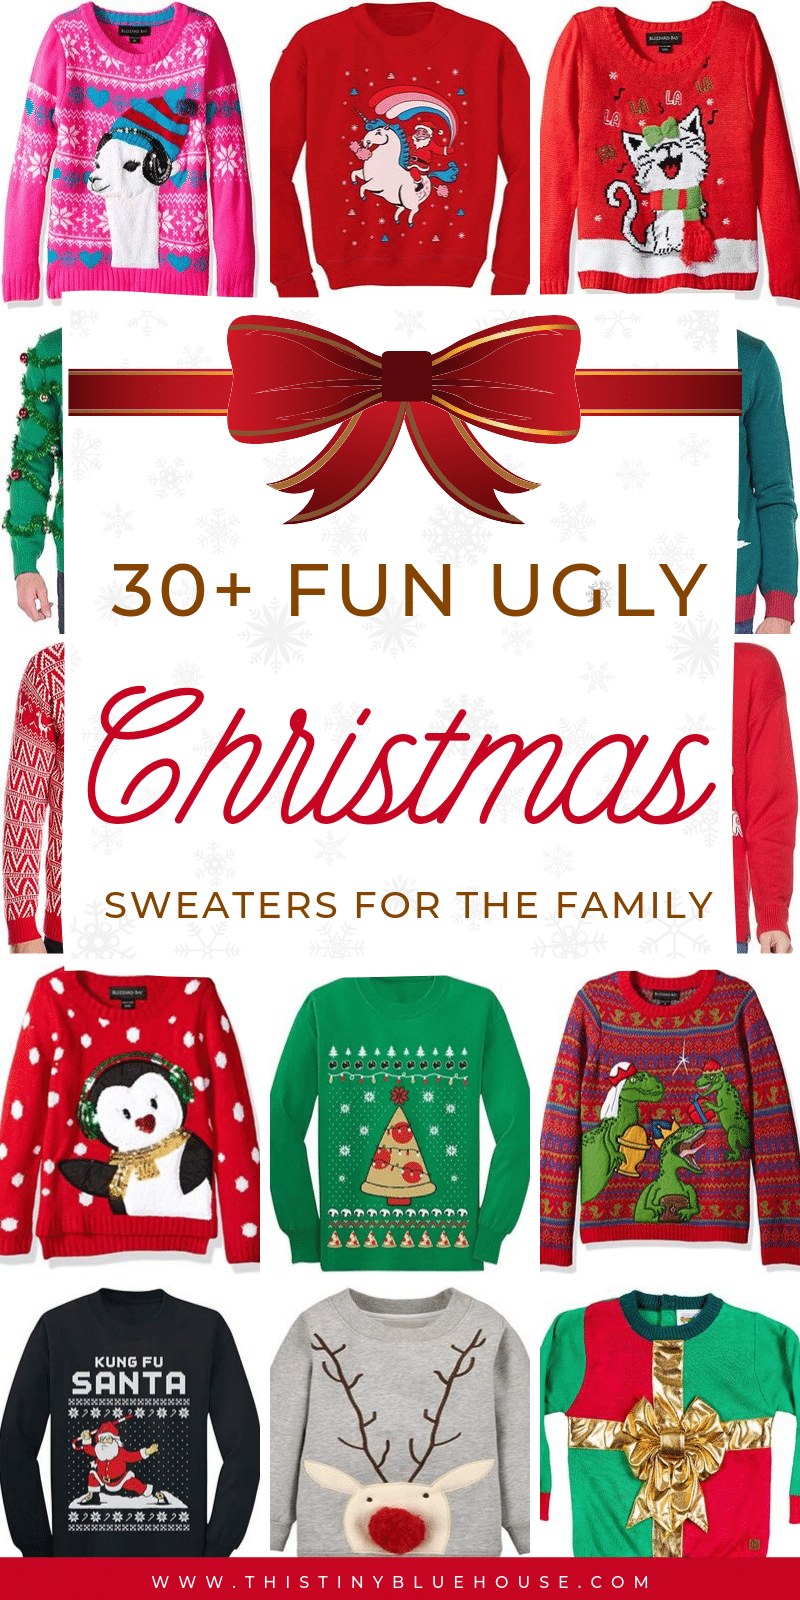 Are you looking for an ugly Christmas sweater for a holiday party? Here are 30+ best ugly Christmas sweaters for the whole family! #ChristmasSweaters #UglyChristmasSweaters #ChristmasSweatersFunny #ChristmasSweatersTacky #ChristmasSweatersParty #UglyChristmasSweatersKids #UglyChristmasSweatersCute #UglyChristmasSweatersFamily